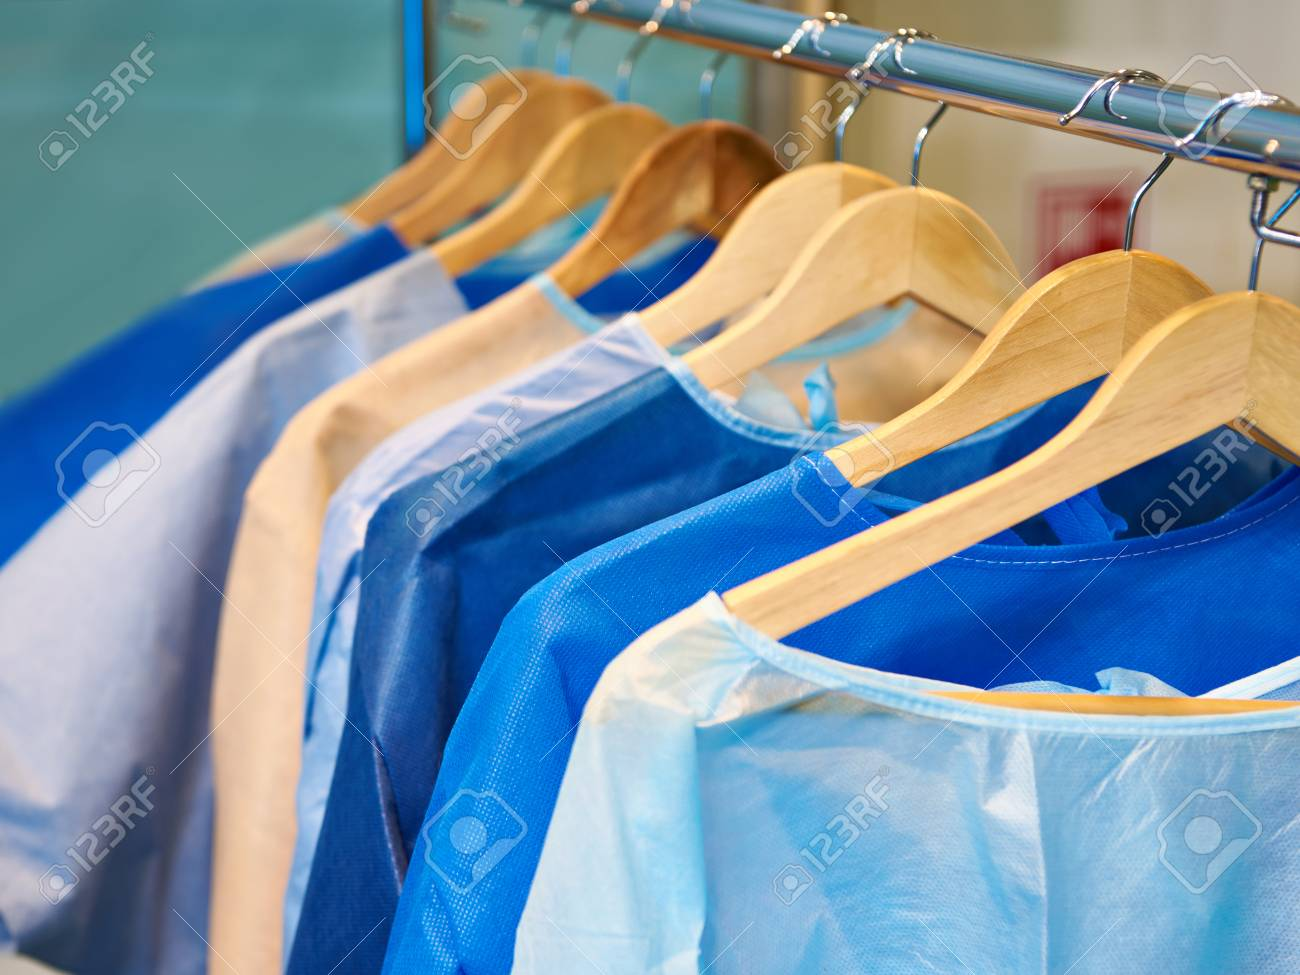 One-time Medical Surgical Gowns On Hangers Stock Photo, Picture And ...